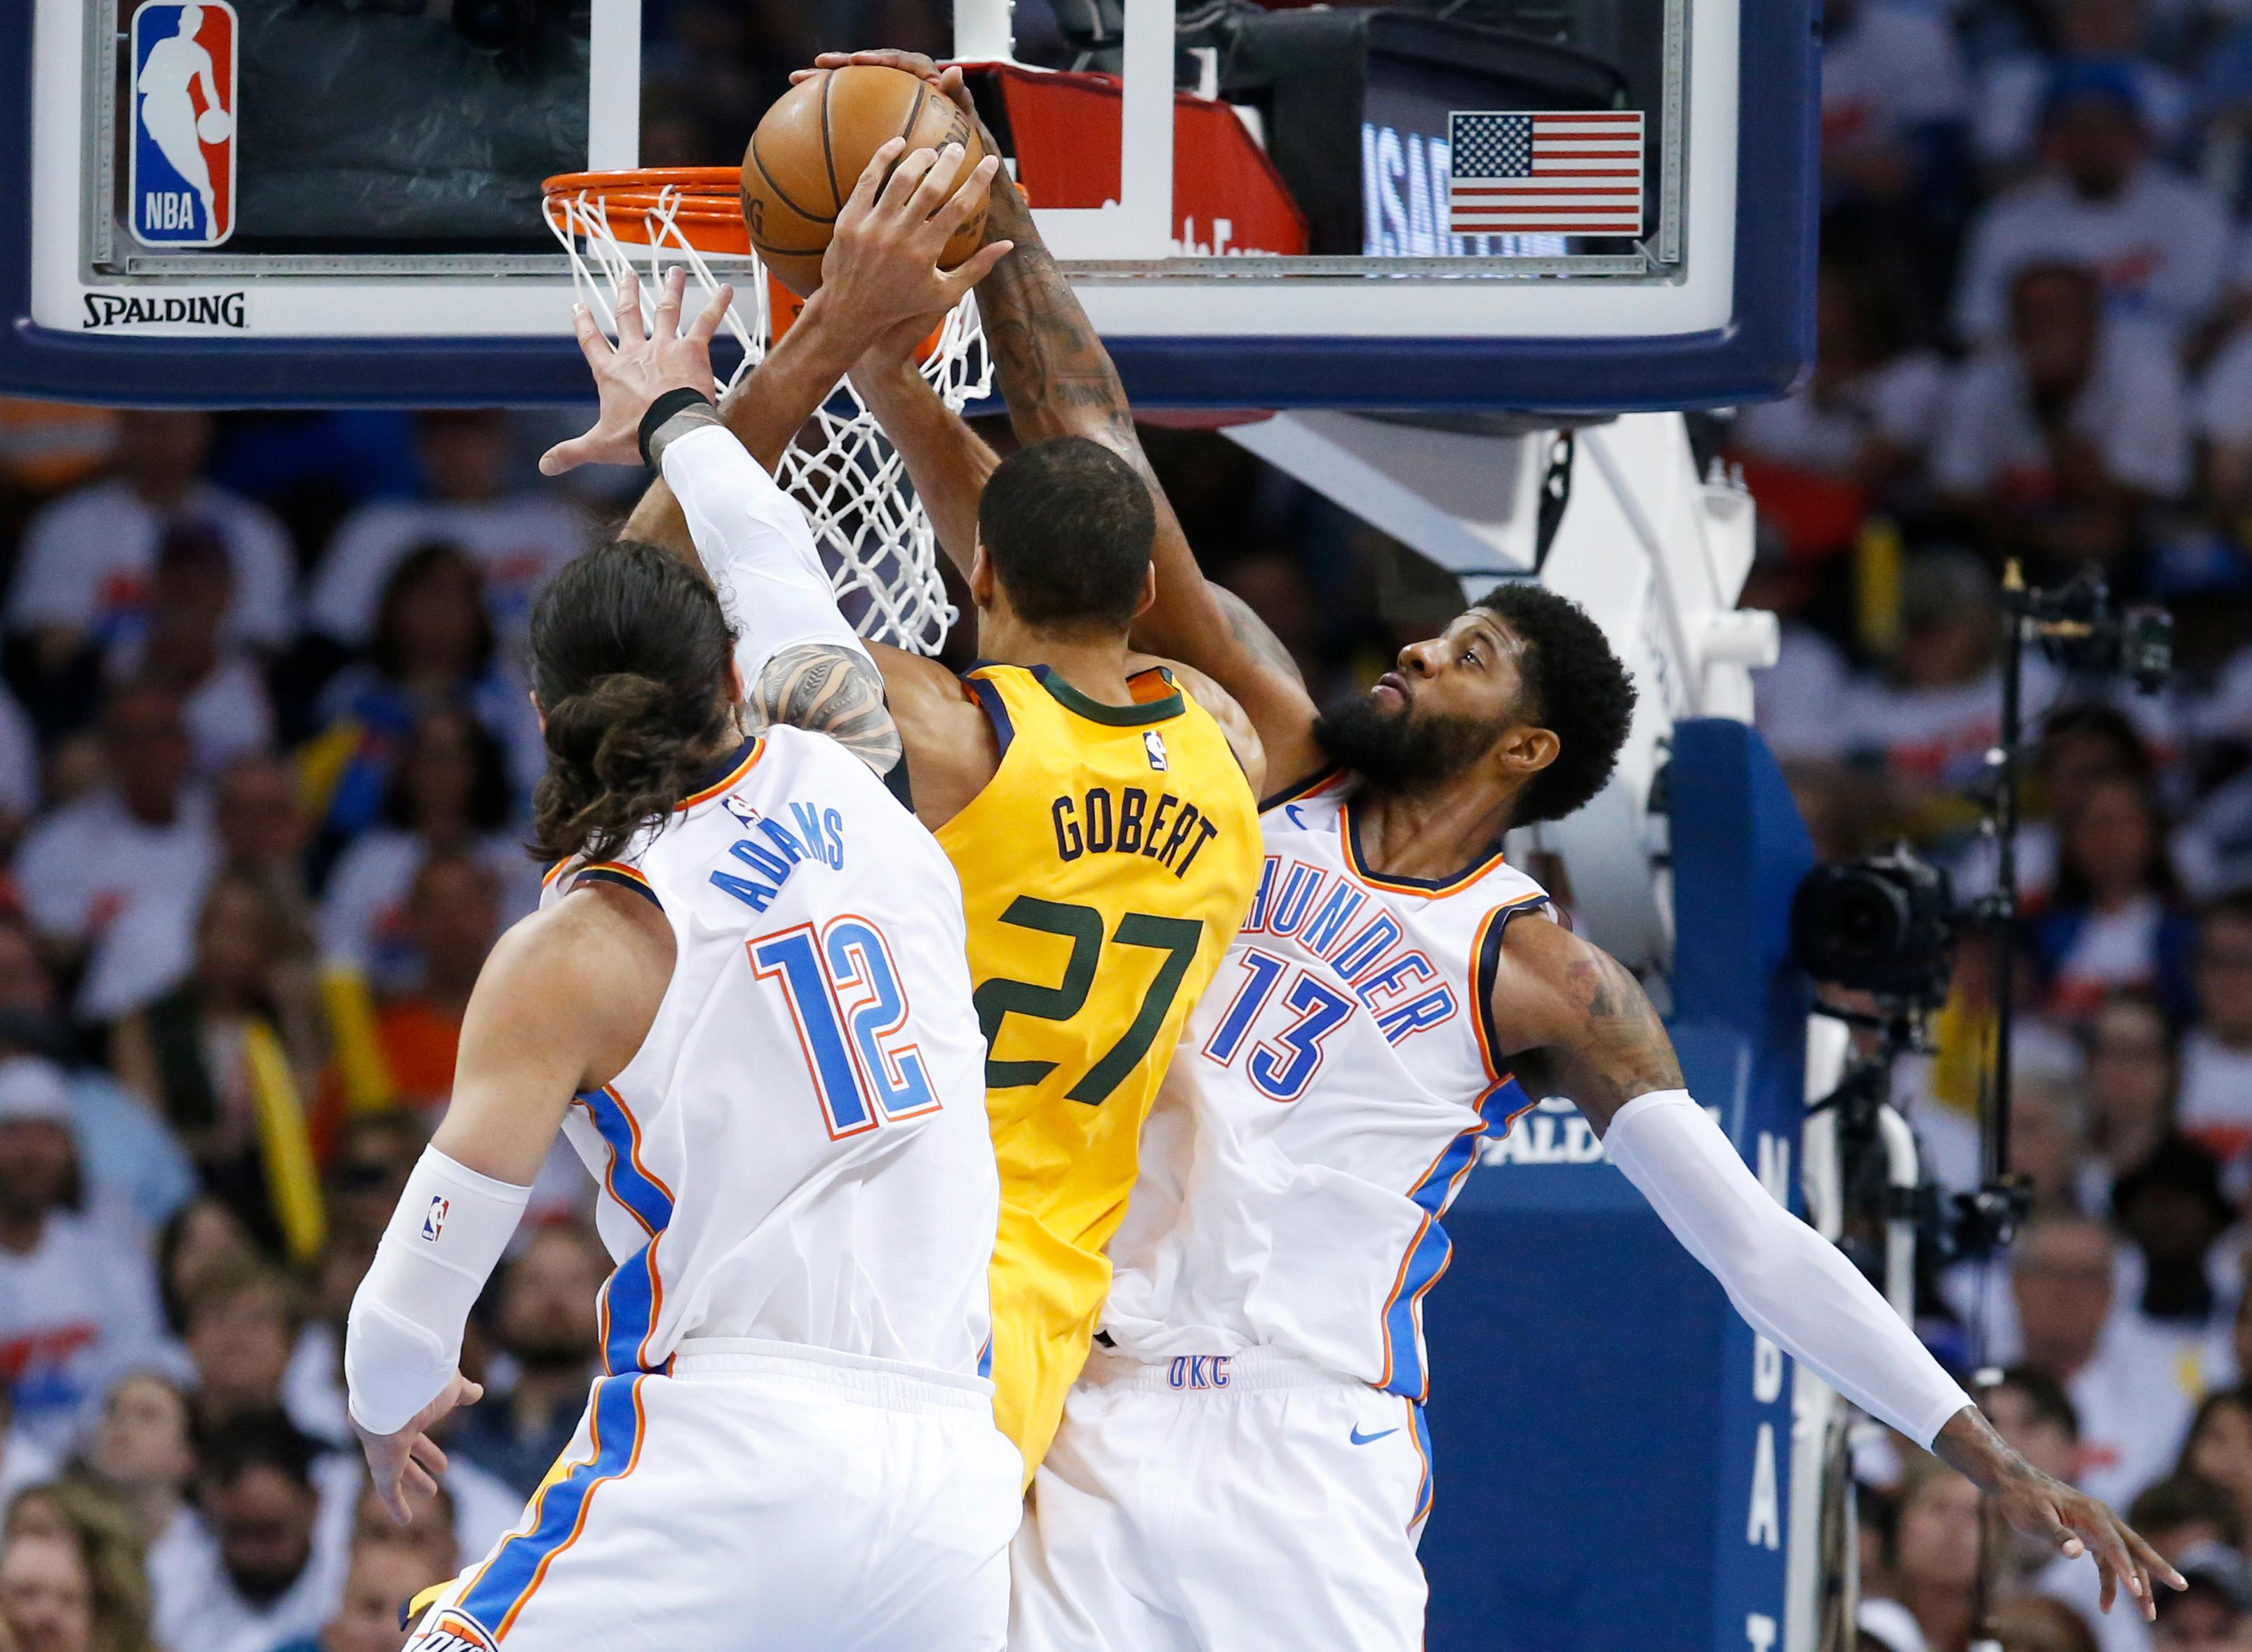 Oklahoma City Thunder forward Paul George (13) blocks a shot by Utah Jazz center Rudy Gobert (27) during the first half of Game 2 of an NBA basketball first-round playoff series in Oklahoma City, Wednesday, April 18, 2018. Thunder center Steven Adams (12) is at left. (AP Photo/Sue Ogrocki)